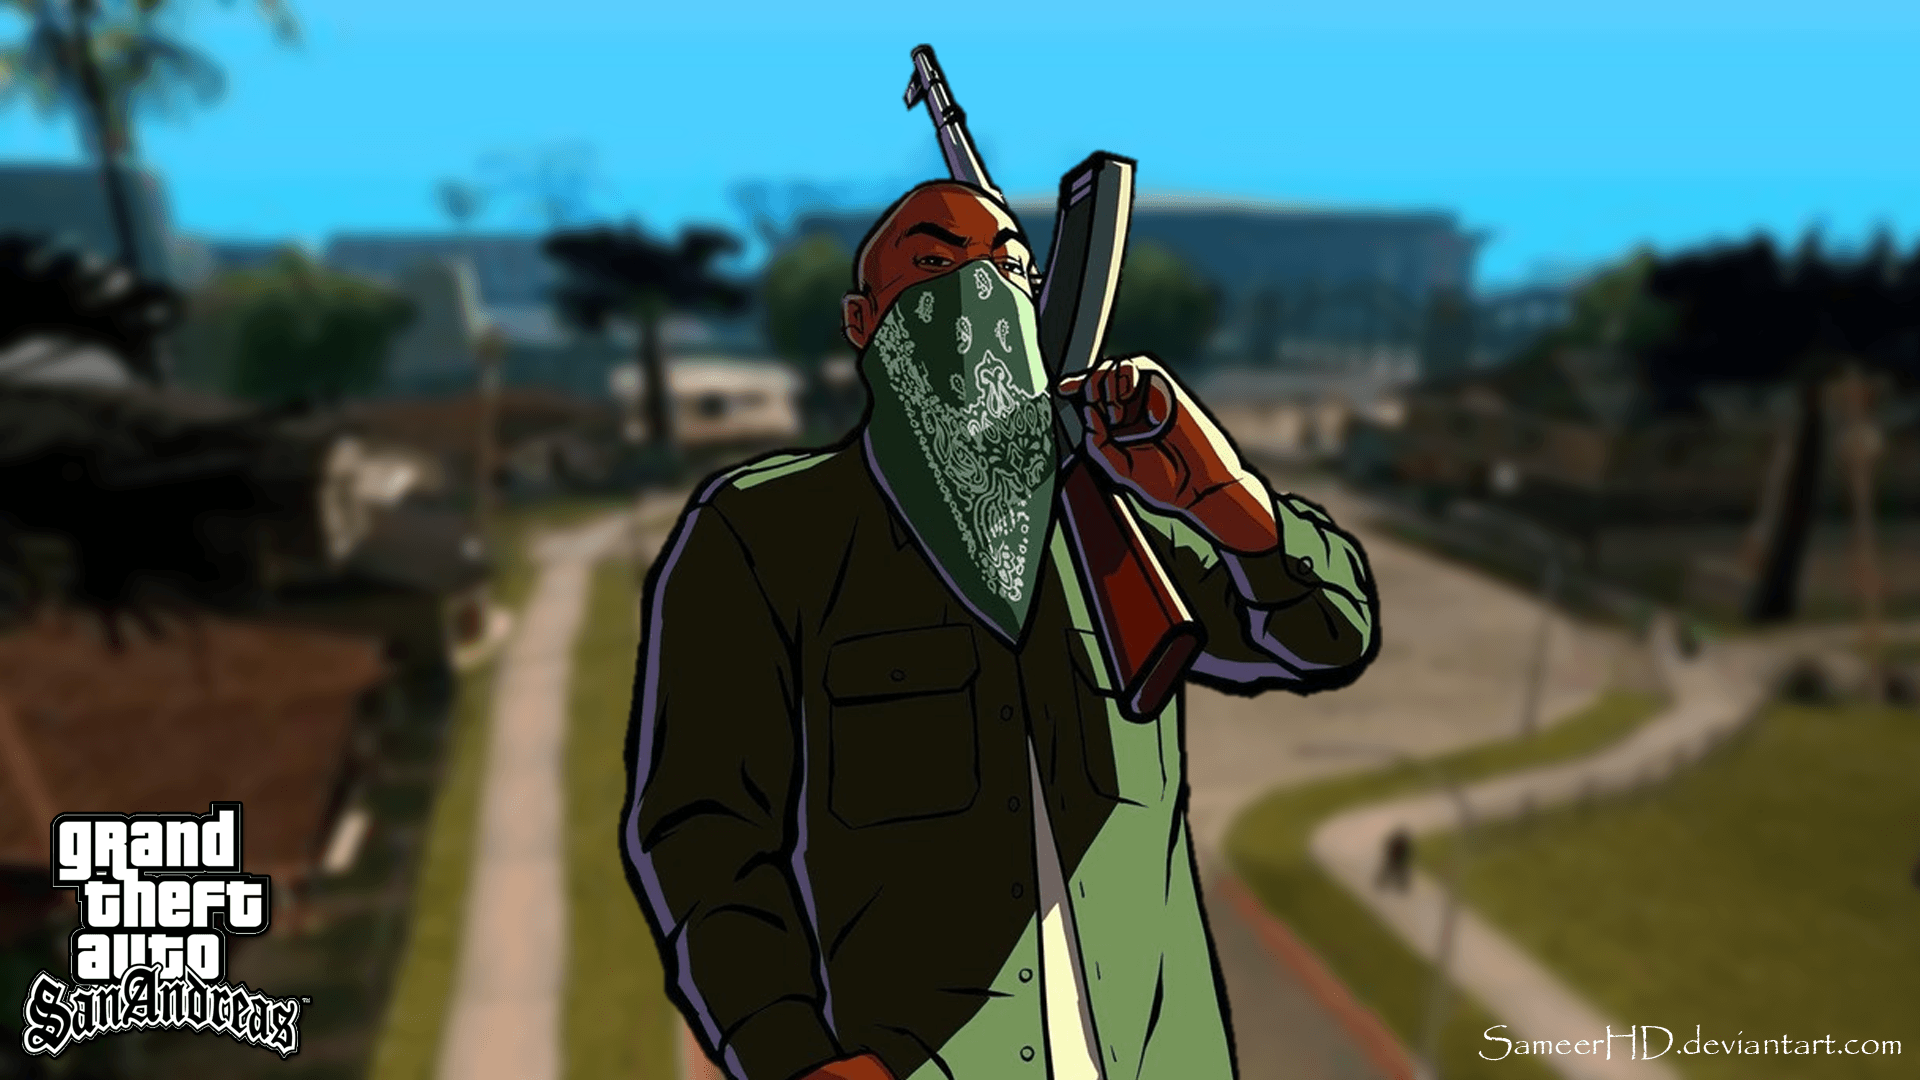 Free Download Grand Theft Auto San Andreas Wallpapers 1920x1080